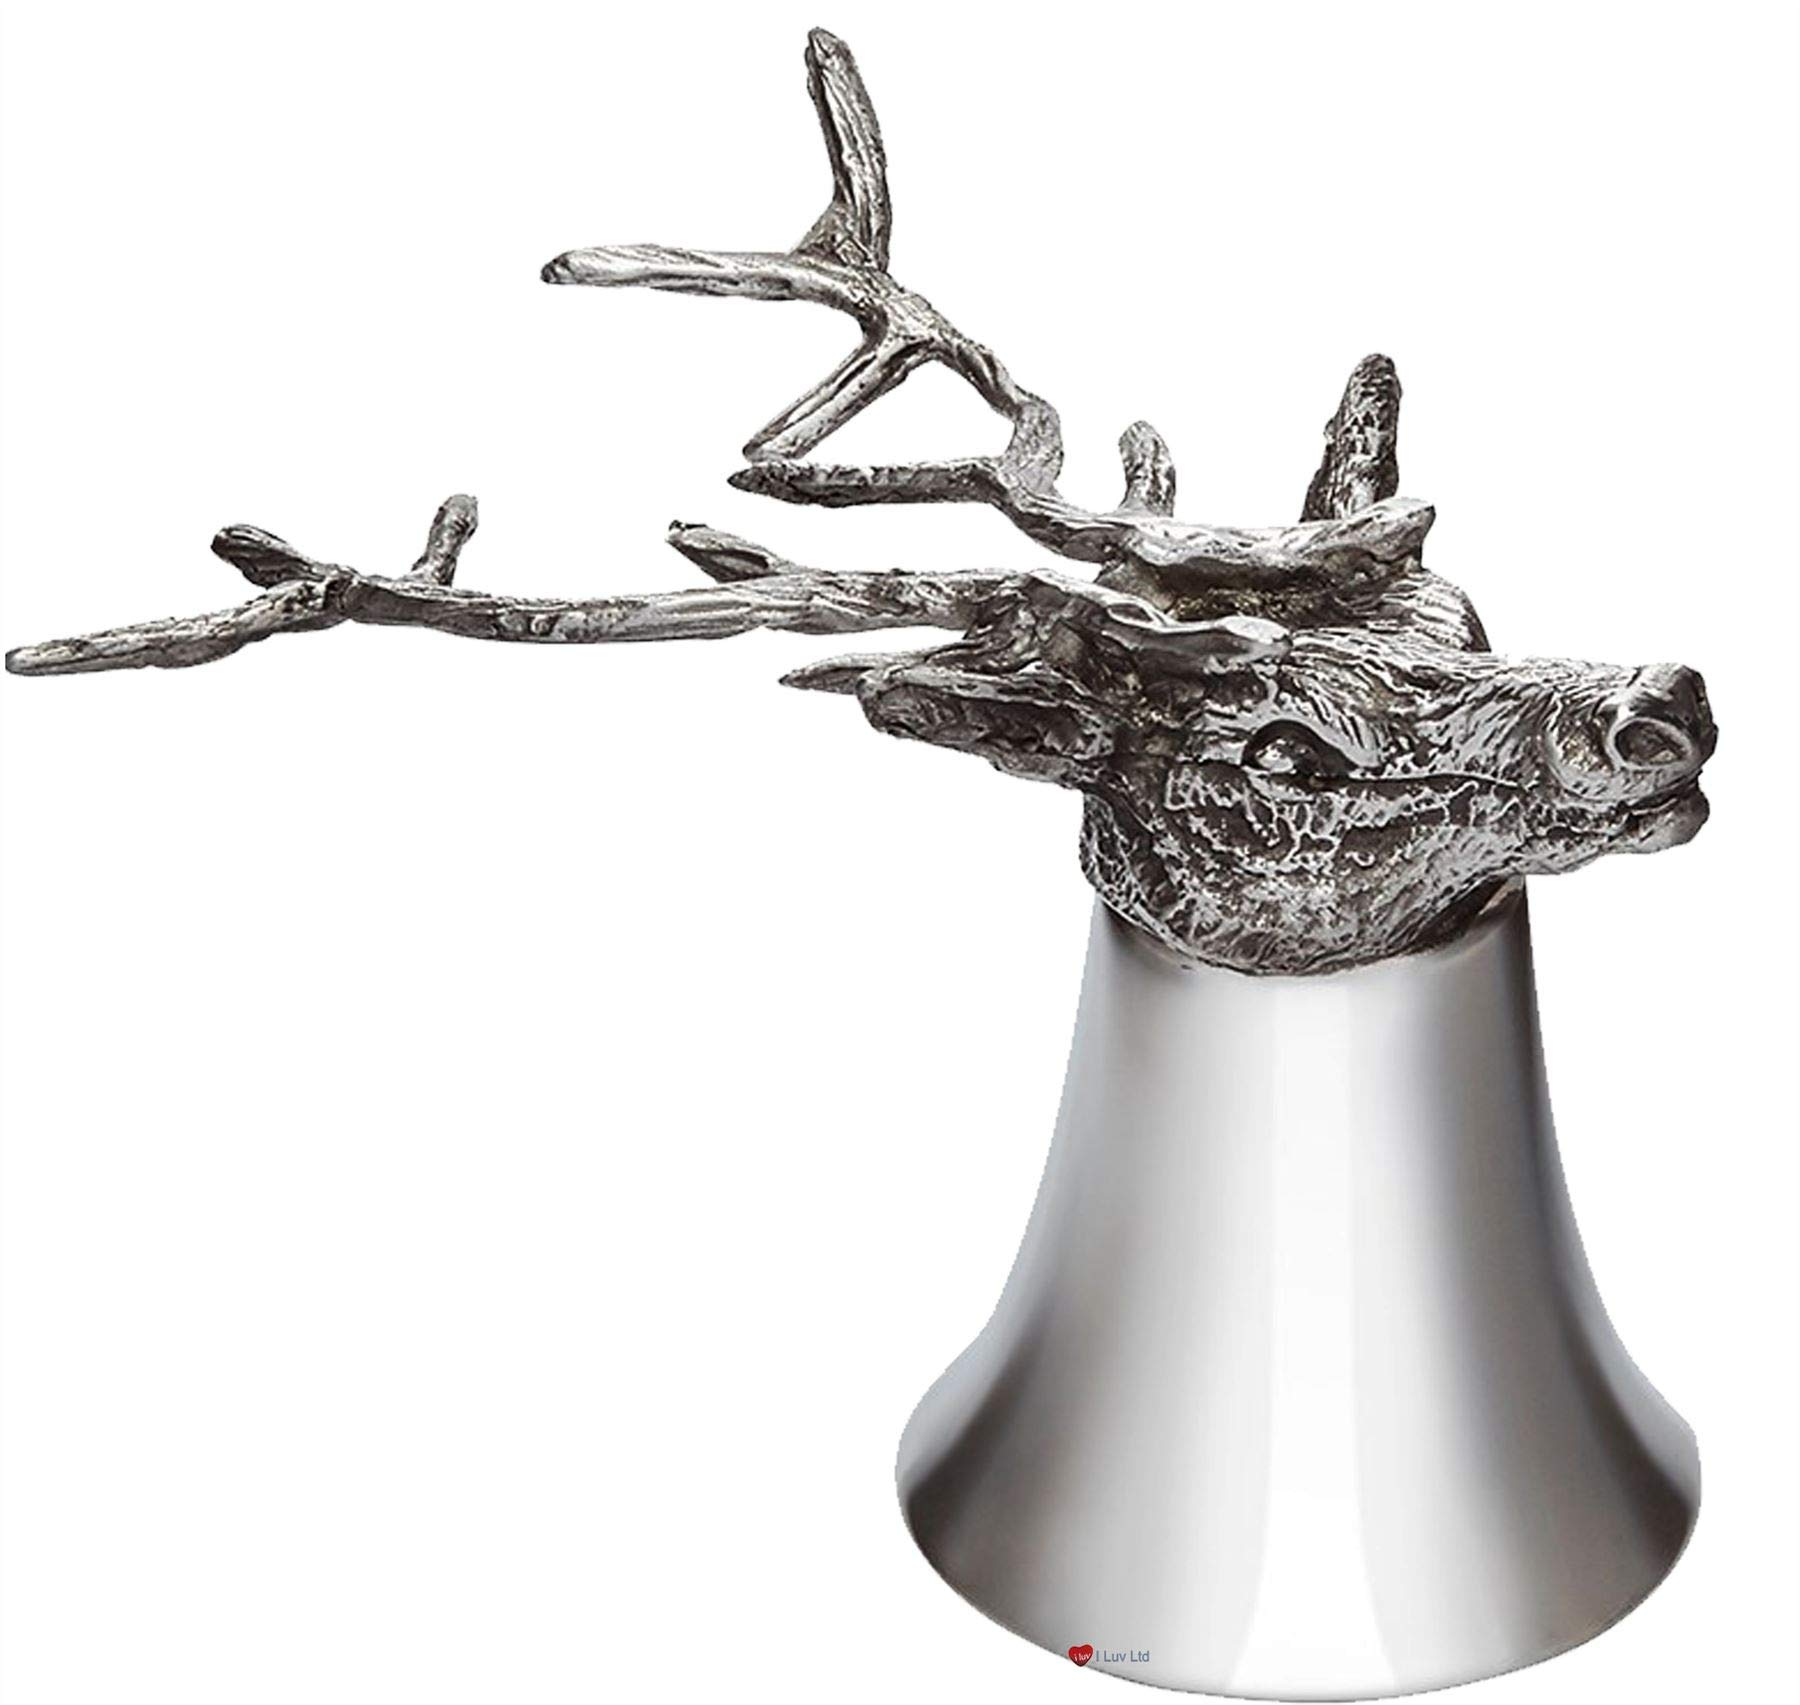 Pewter Jigger Measure or Stirrup Cup with Stag Head - 3 oz